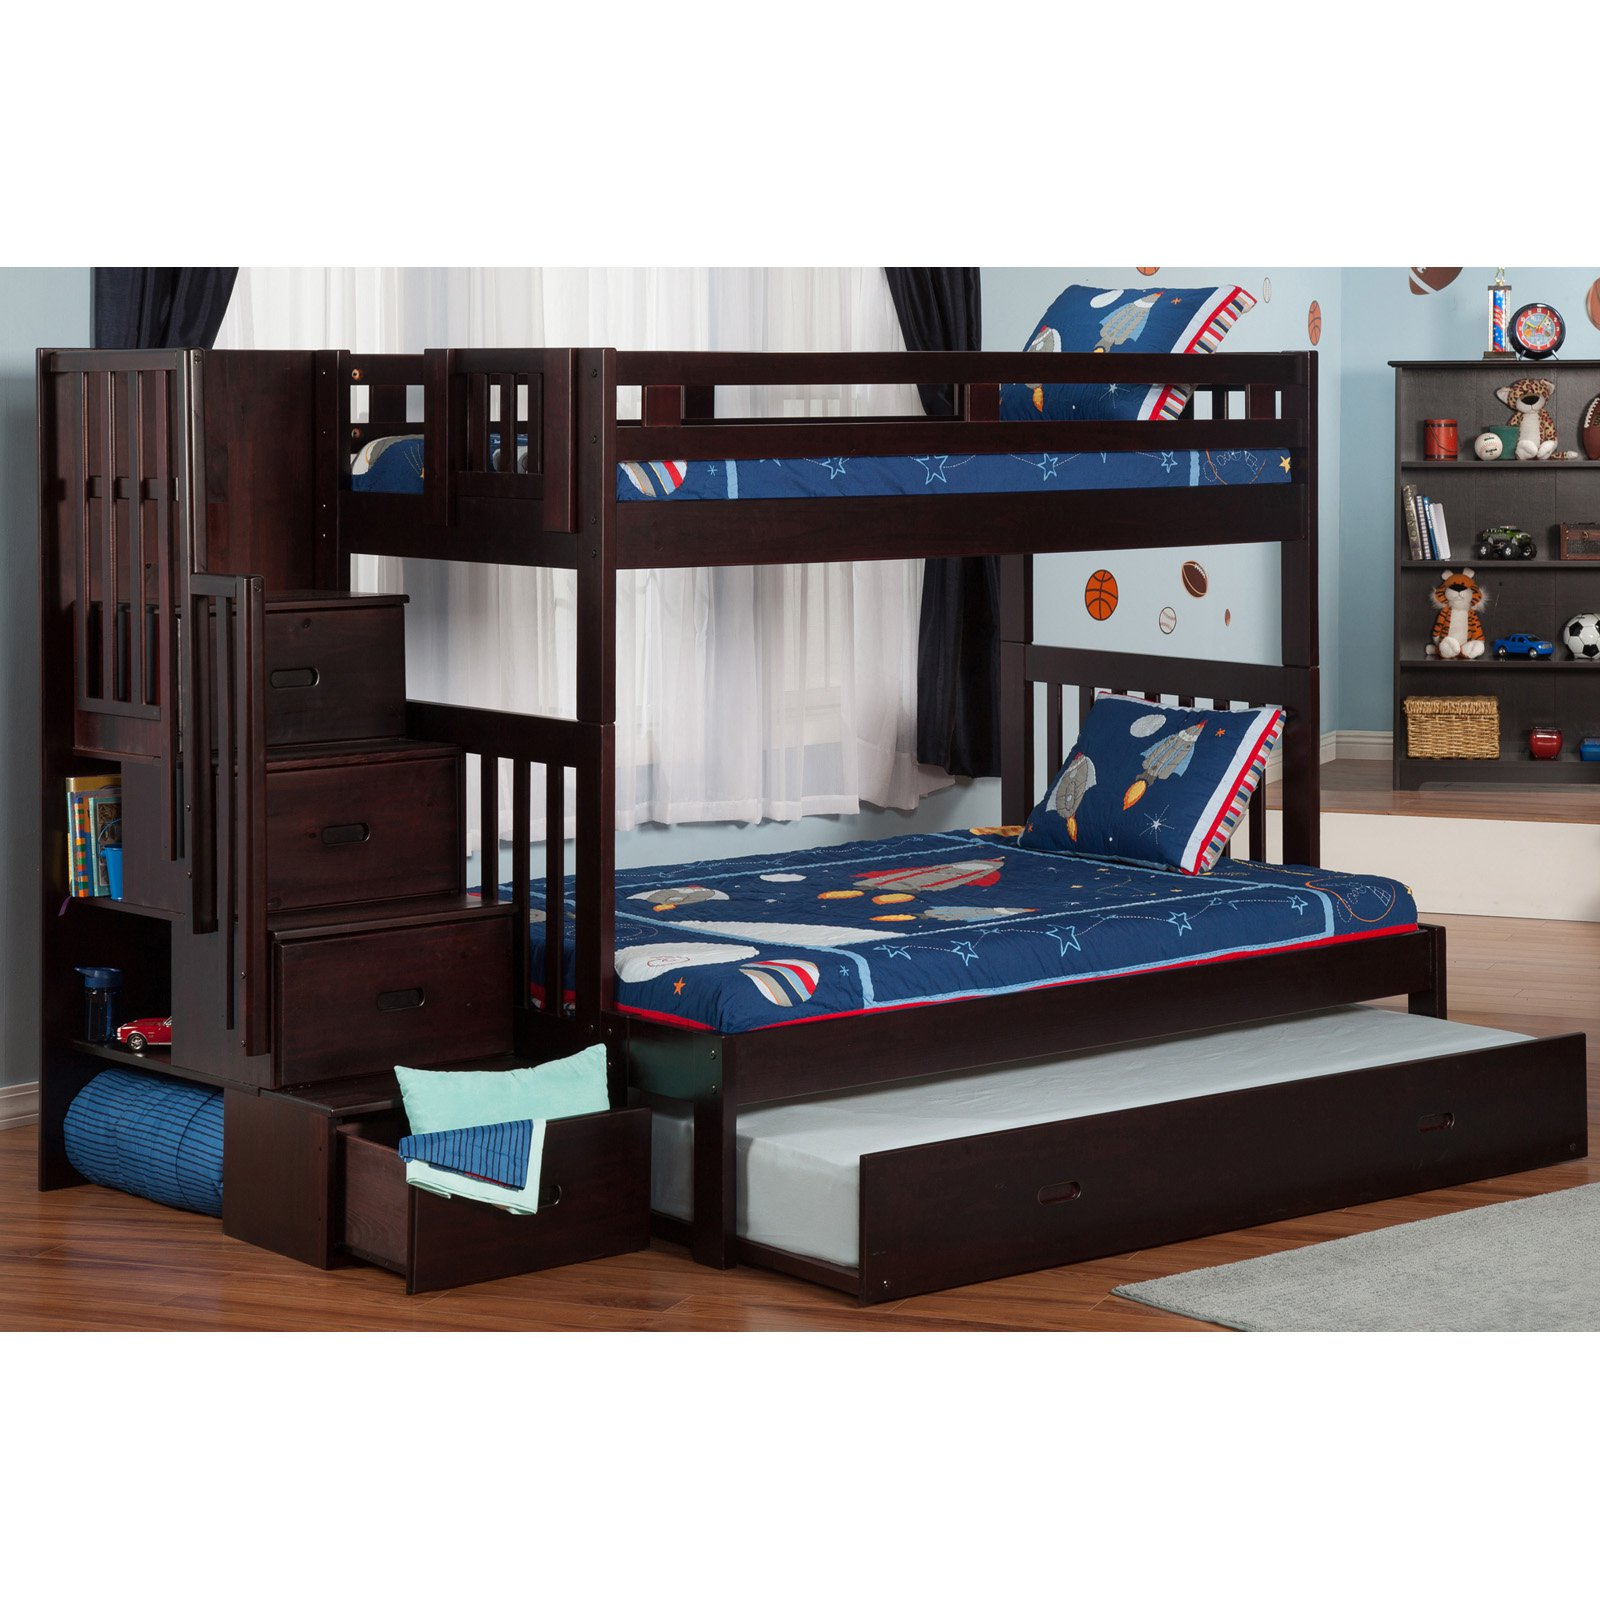 Atlantic Furniture Cascade Staircase Twin Over Full Bunk Bed